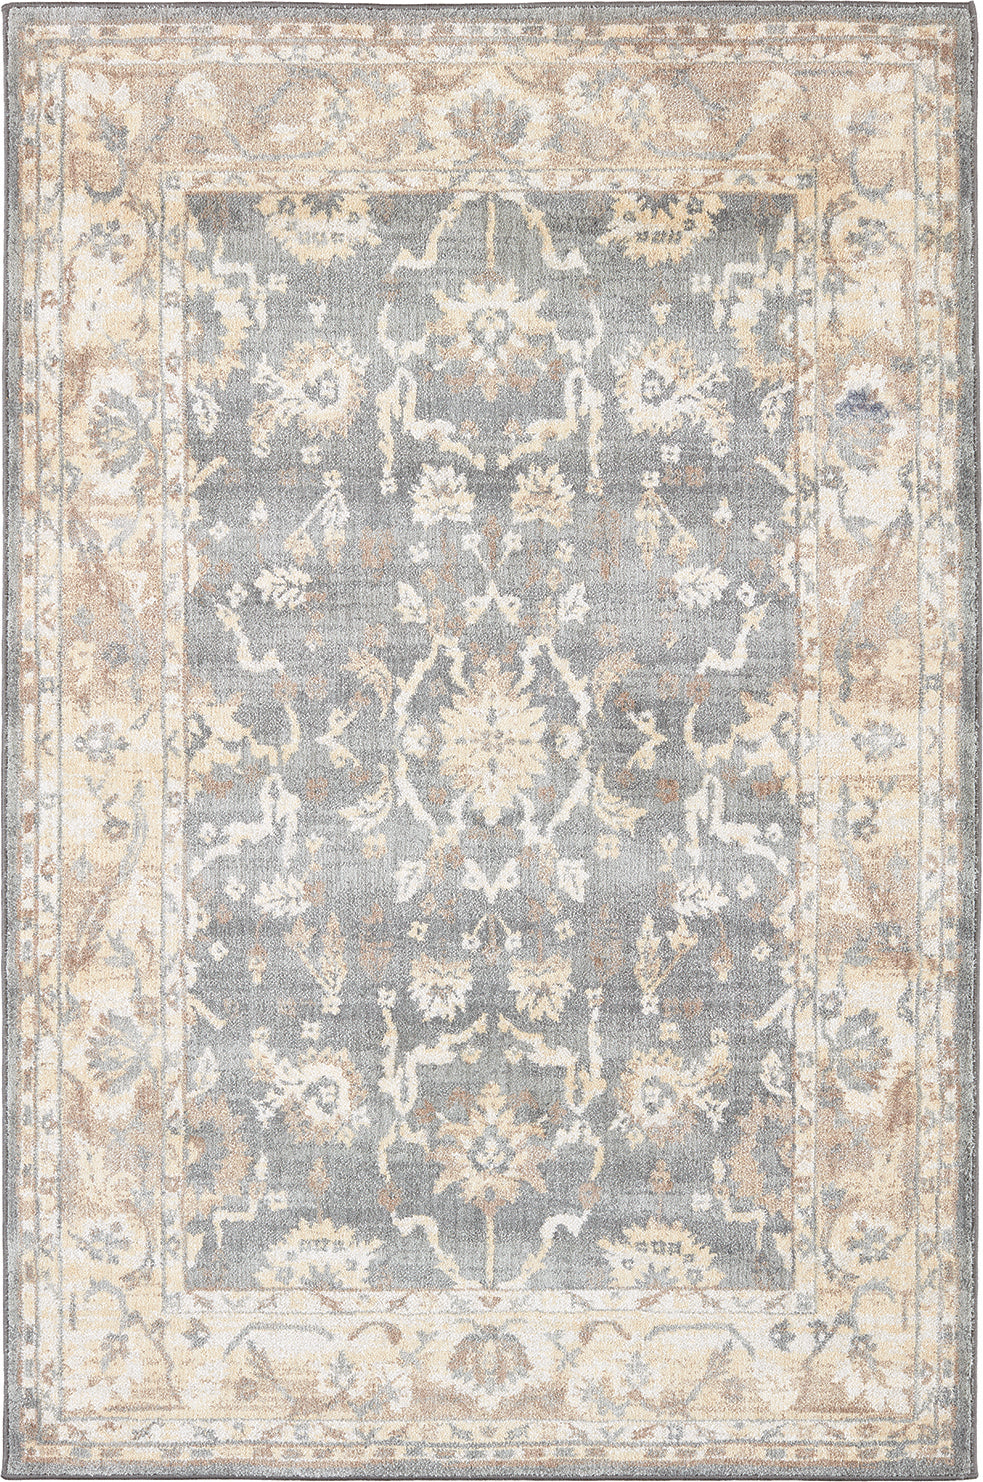 Karastan Euphoria Liffey Willow Gray Area Rug main image